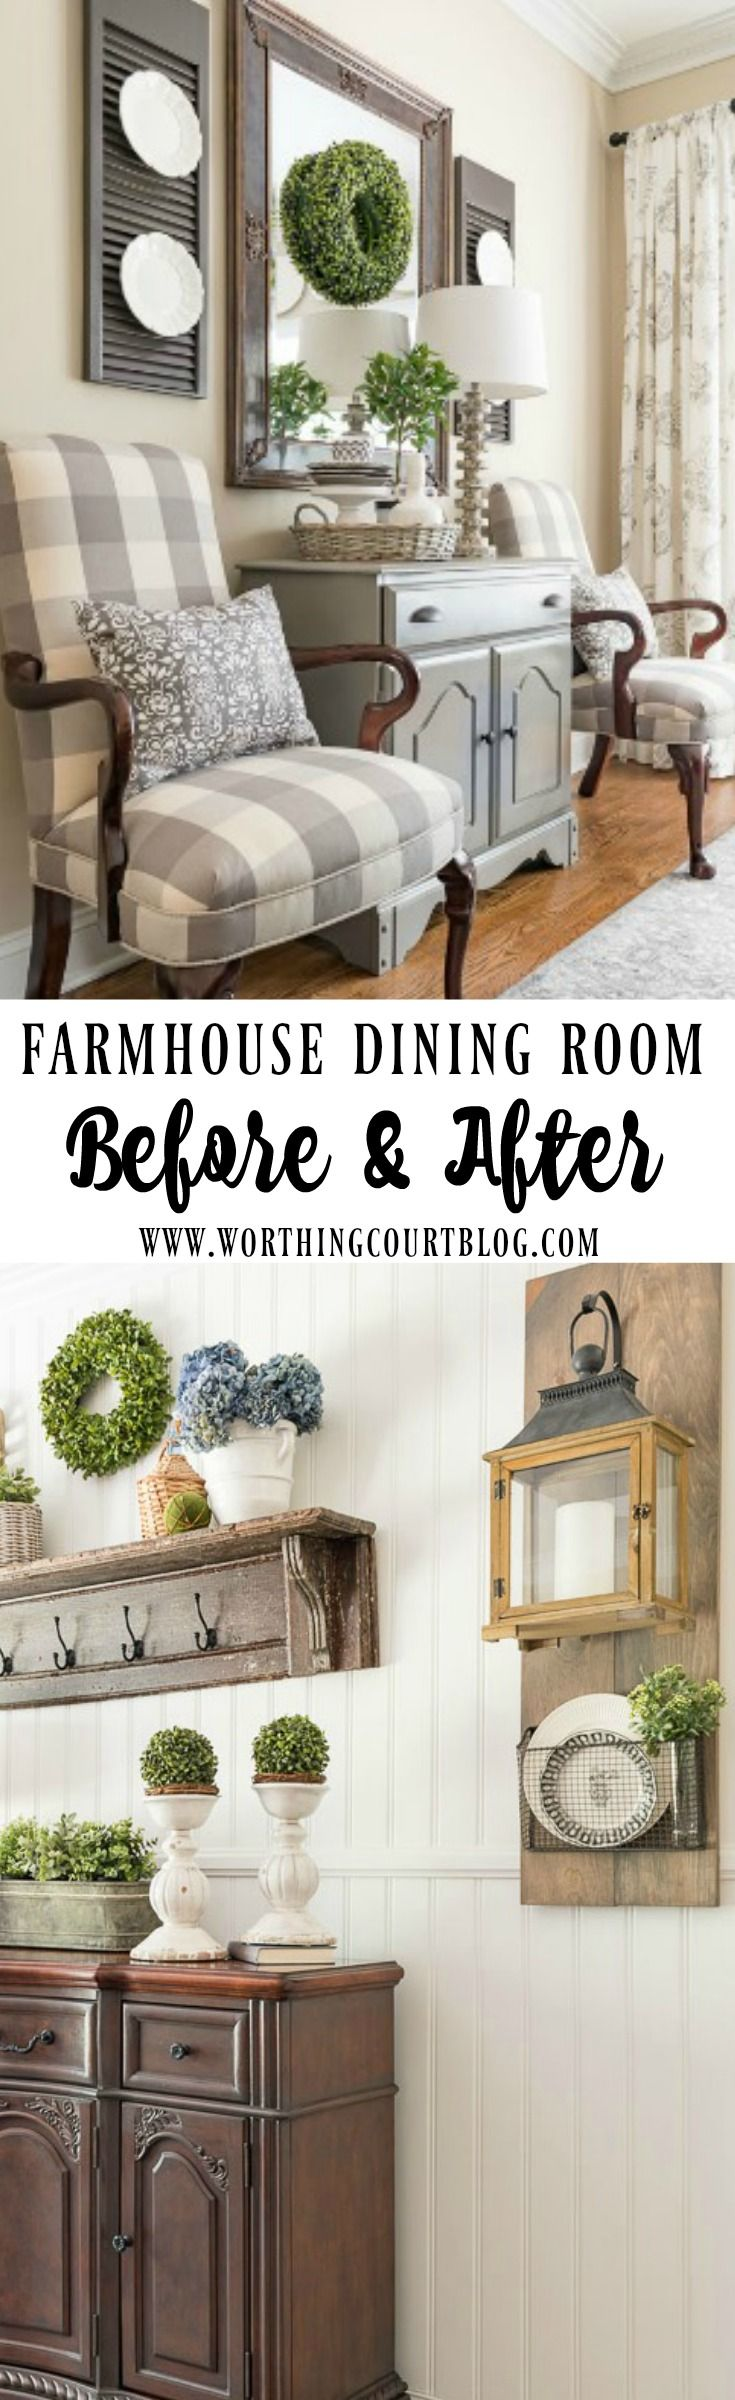 Attractive Farmhouse Dining Room Makeover Reveal   Before And After